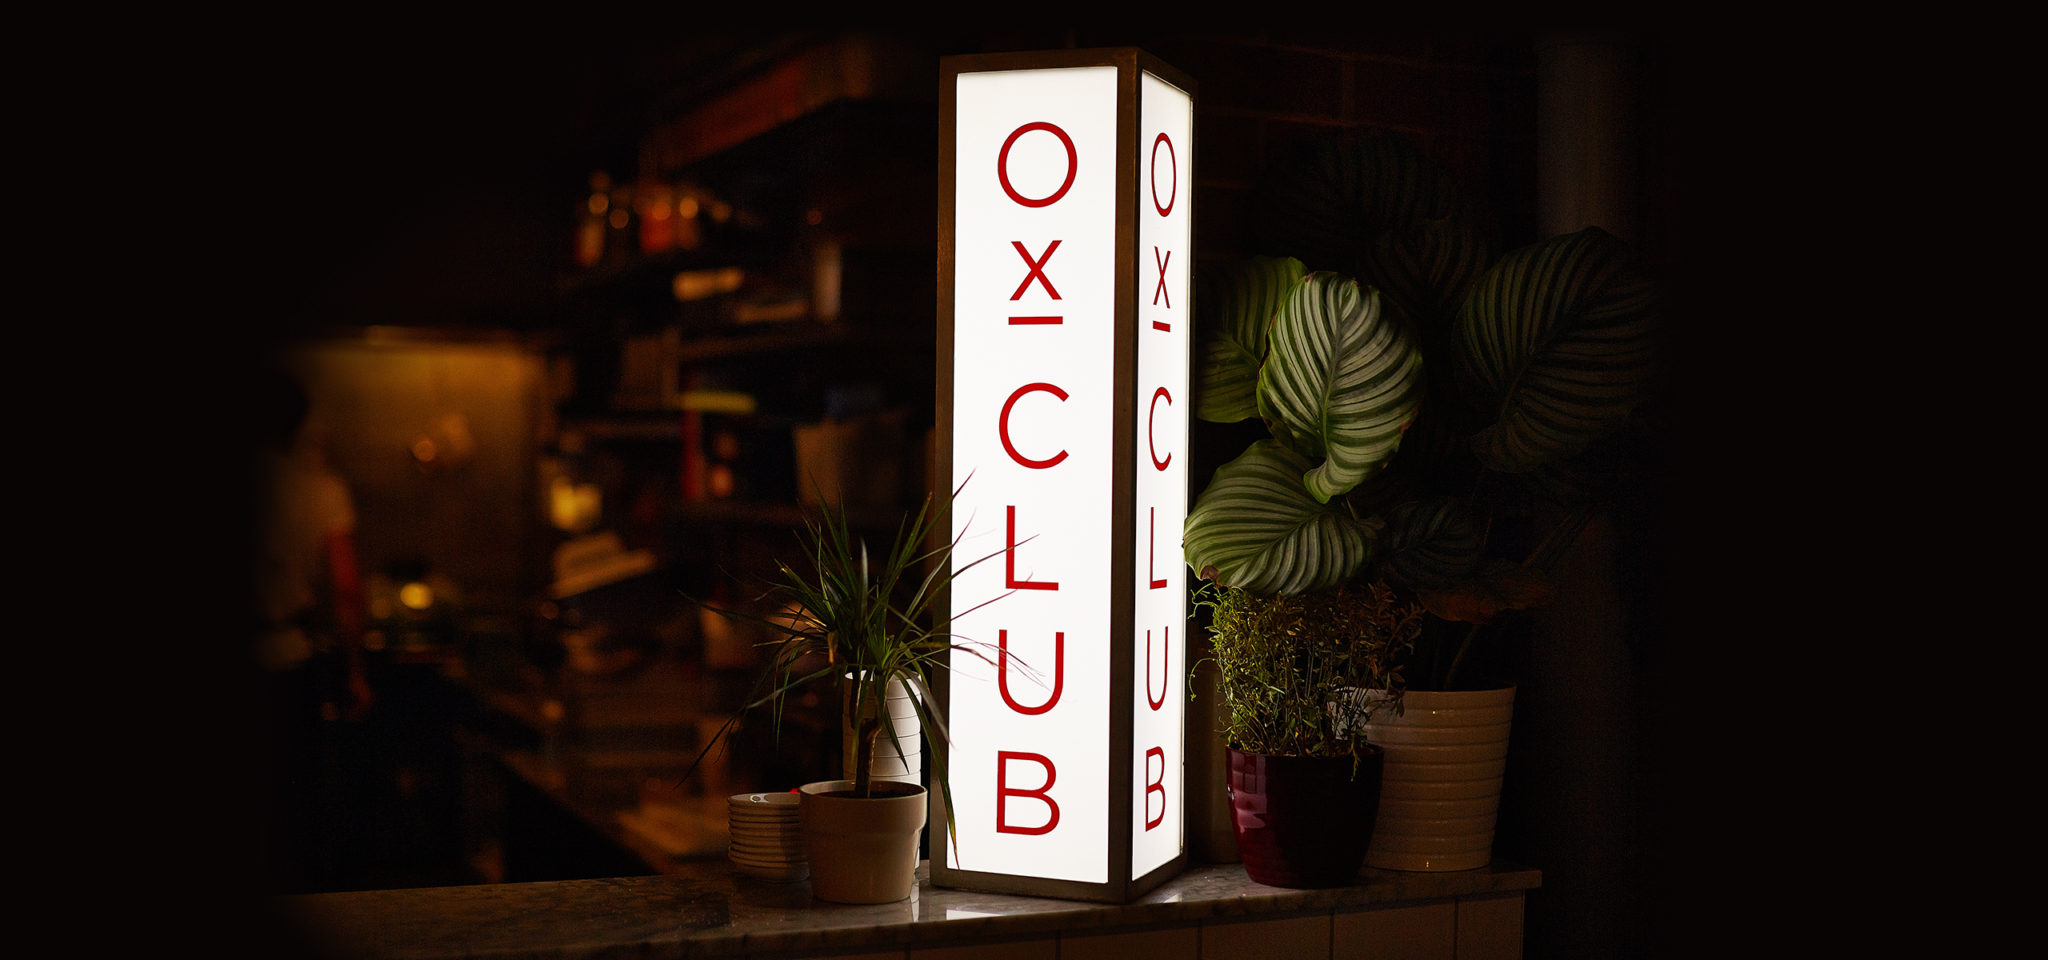 Ox Club Restaurant Branding, Interior Lightbox Signage